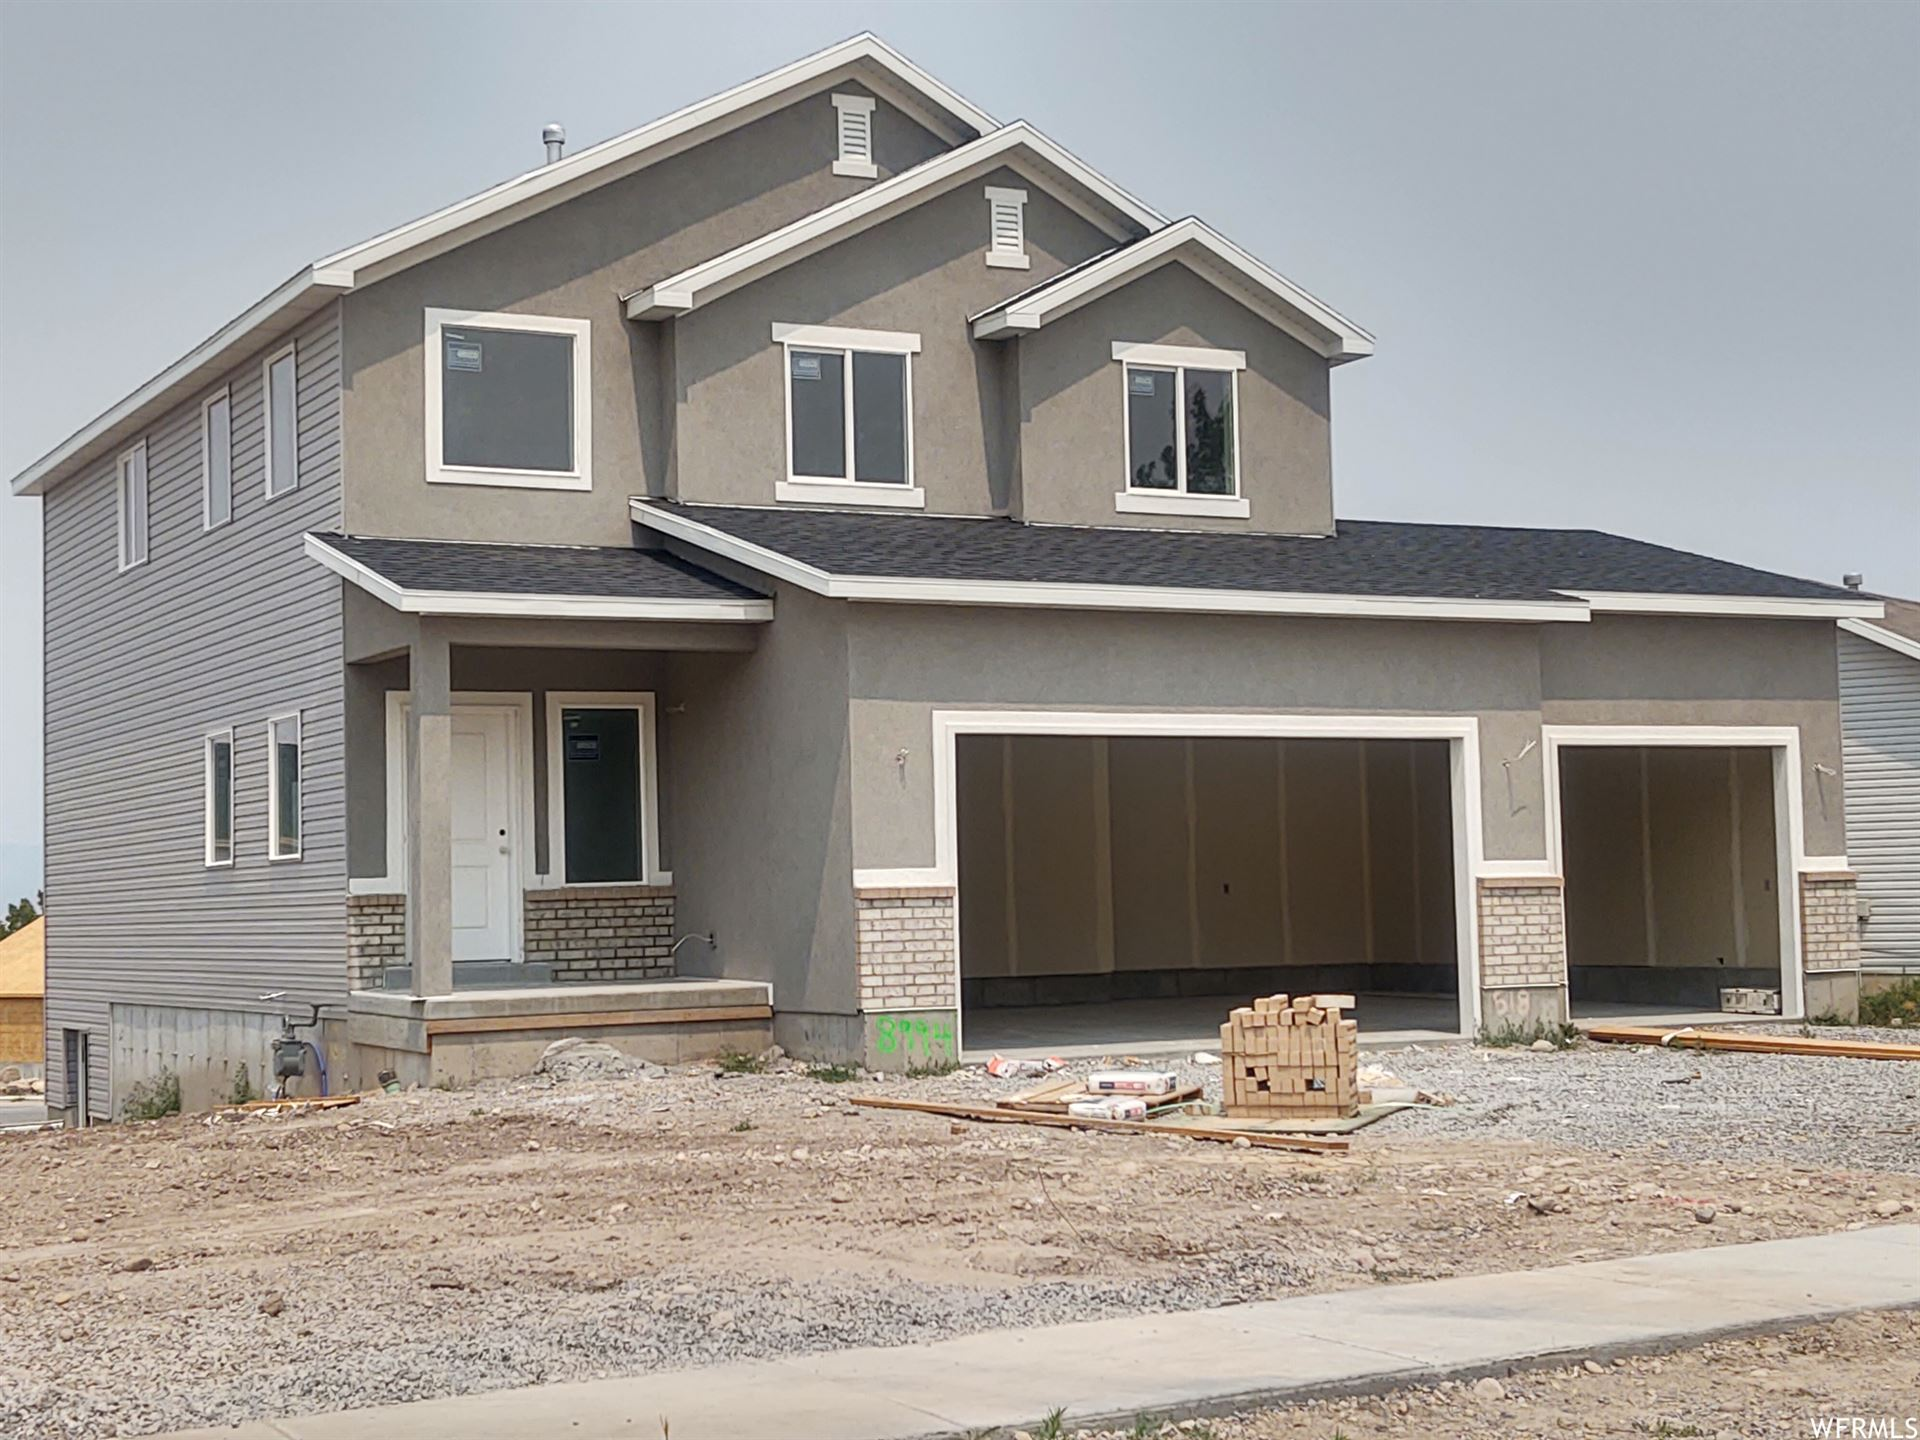 Photo of 3307 S NEWHOUSE DR #520, Magna, UT 84044 (MLS # 1753324)